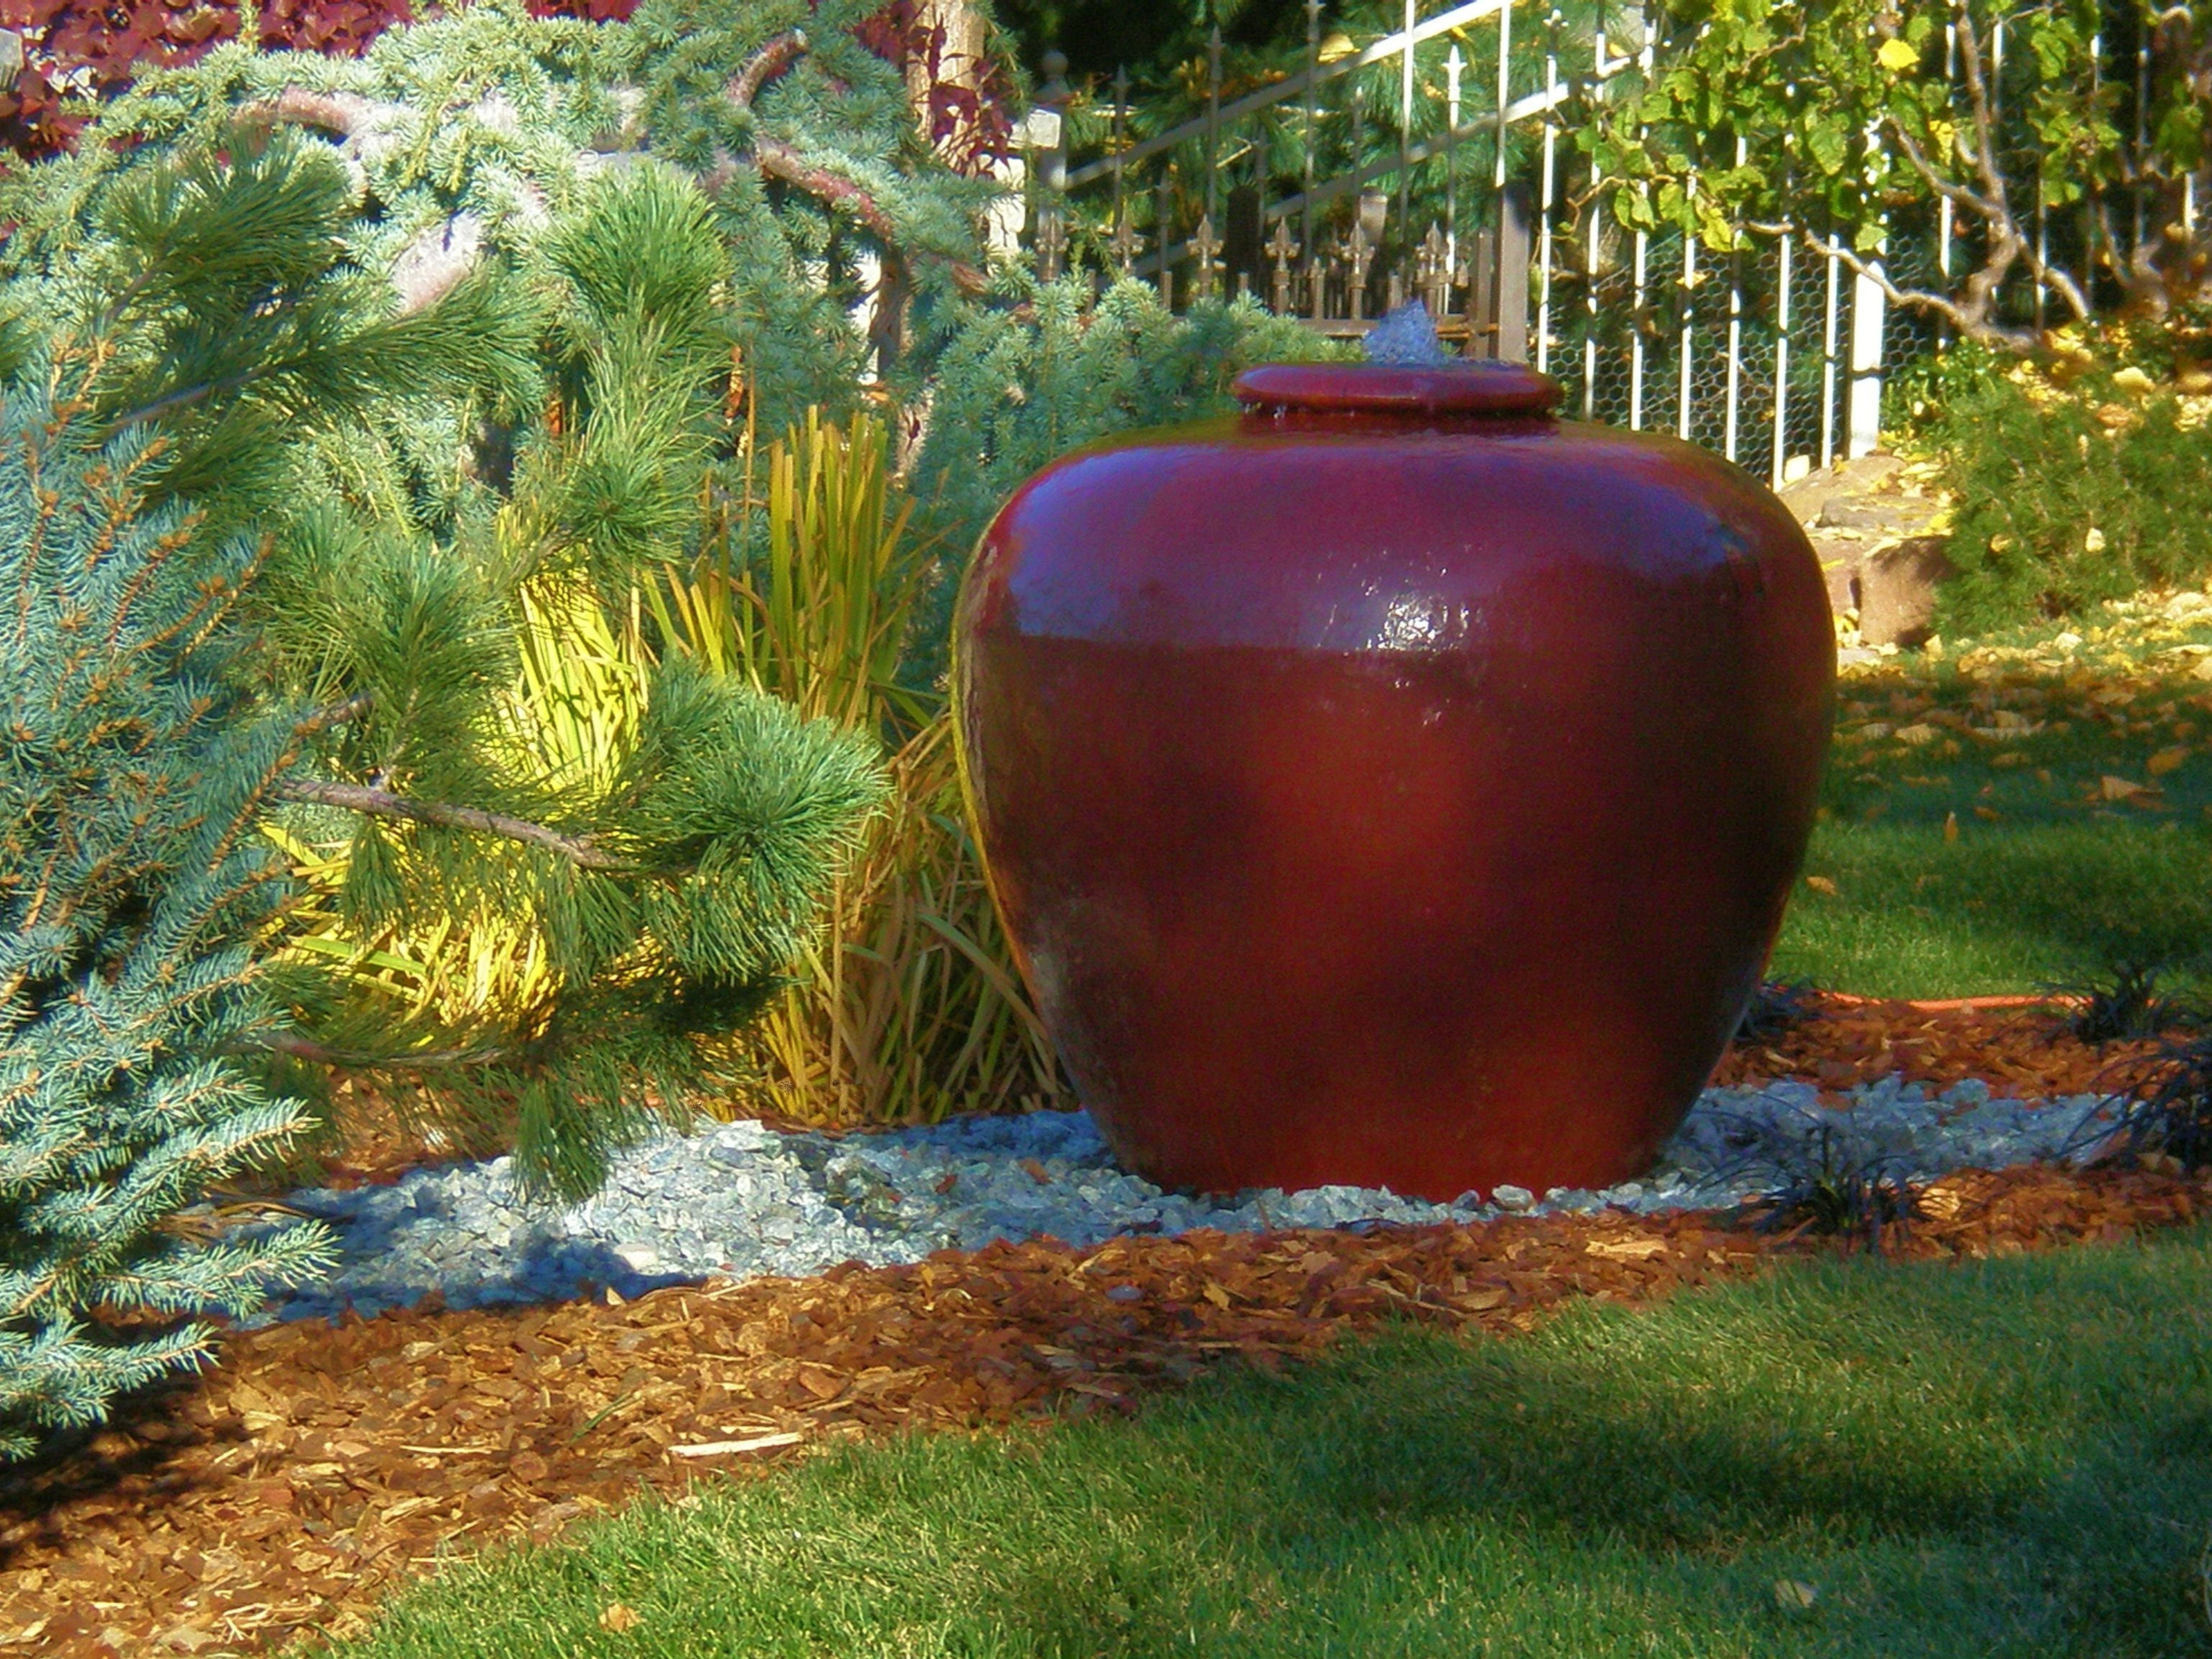 Water Feature Made Out Of An Oversized Ceramic Pot With A